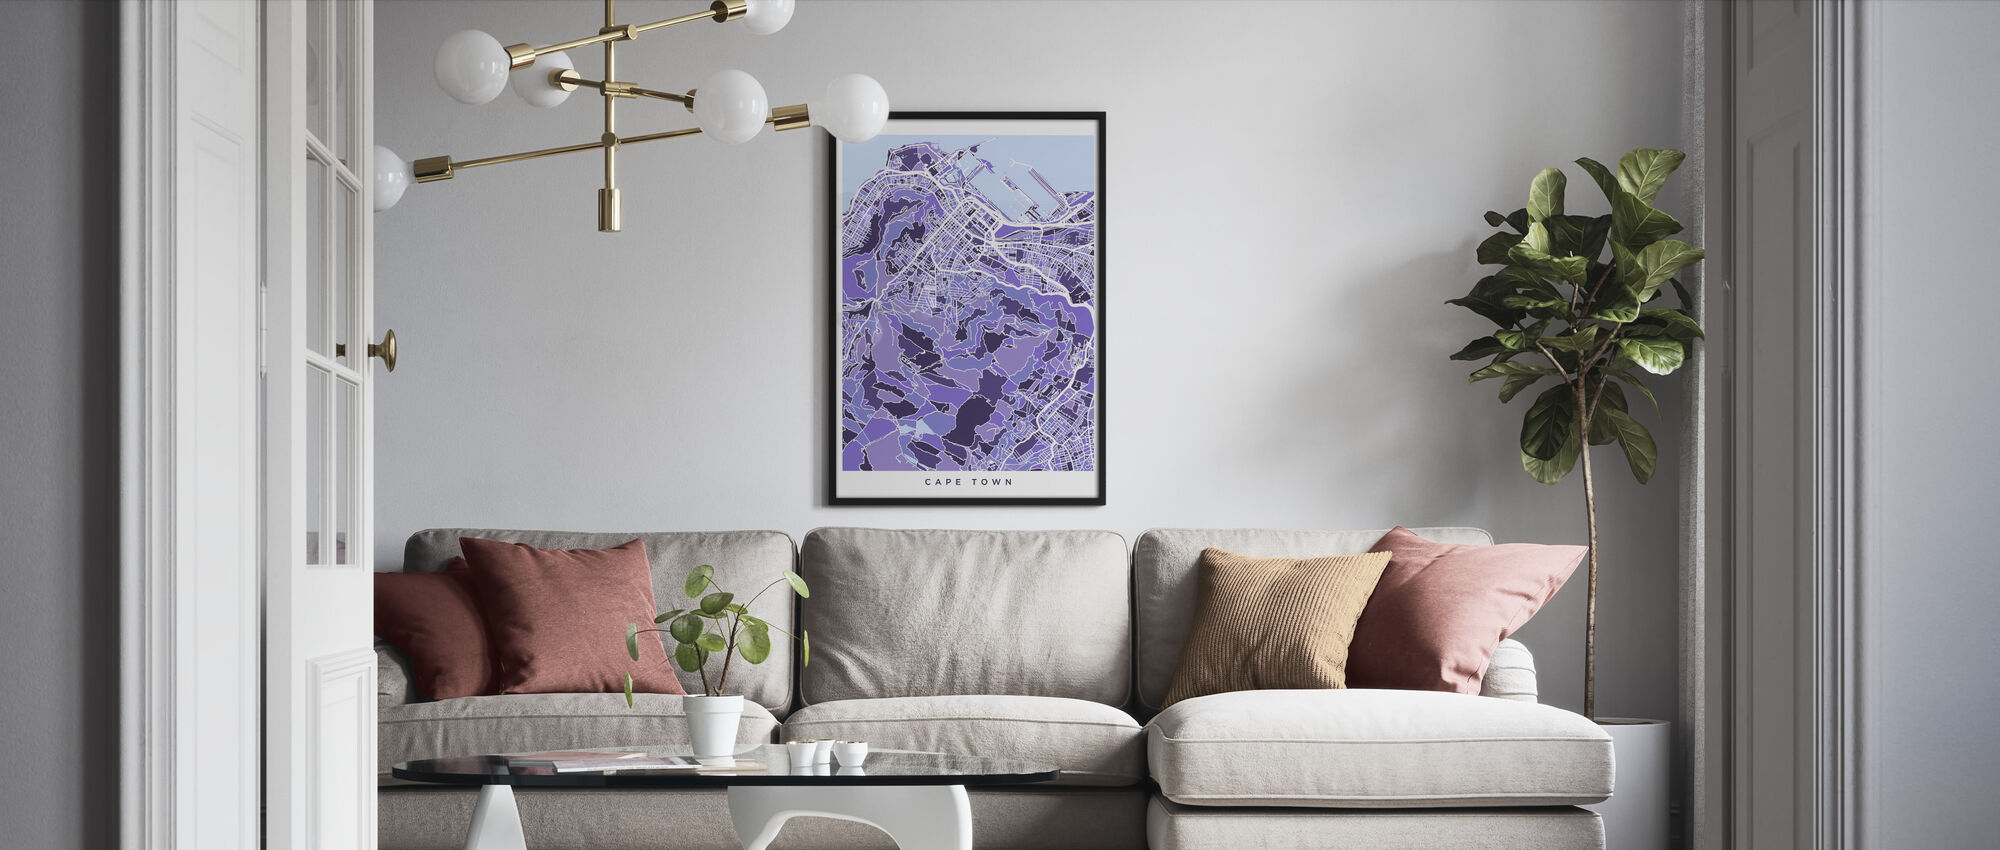 Cape Town South Africa City Street Map - Framed print - Living Room